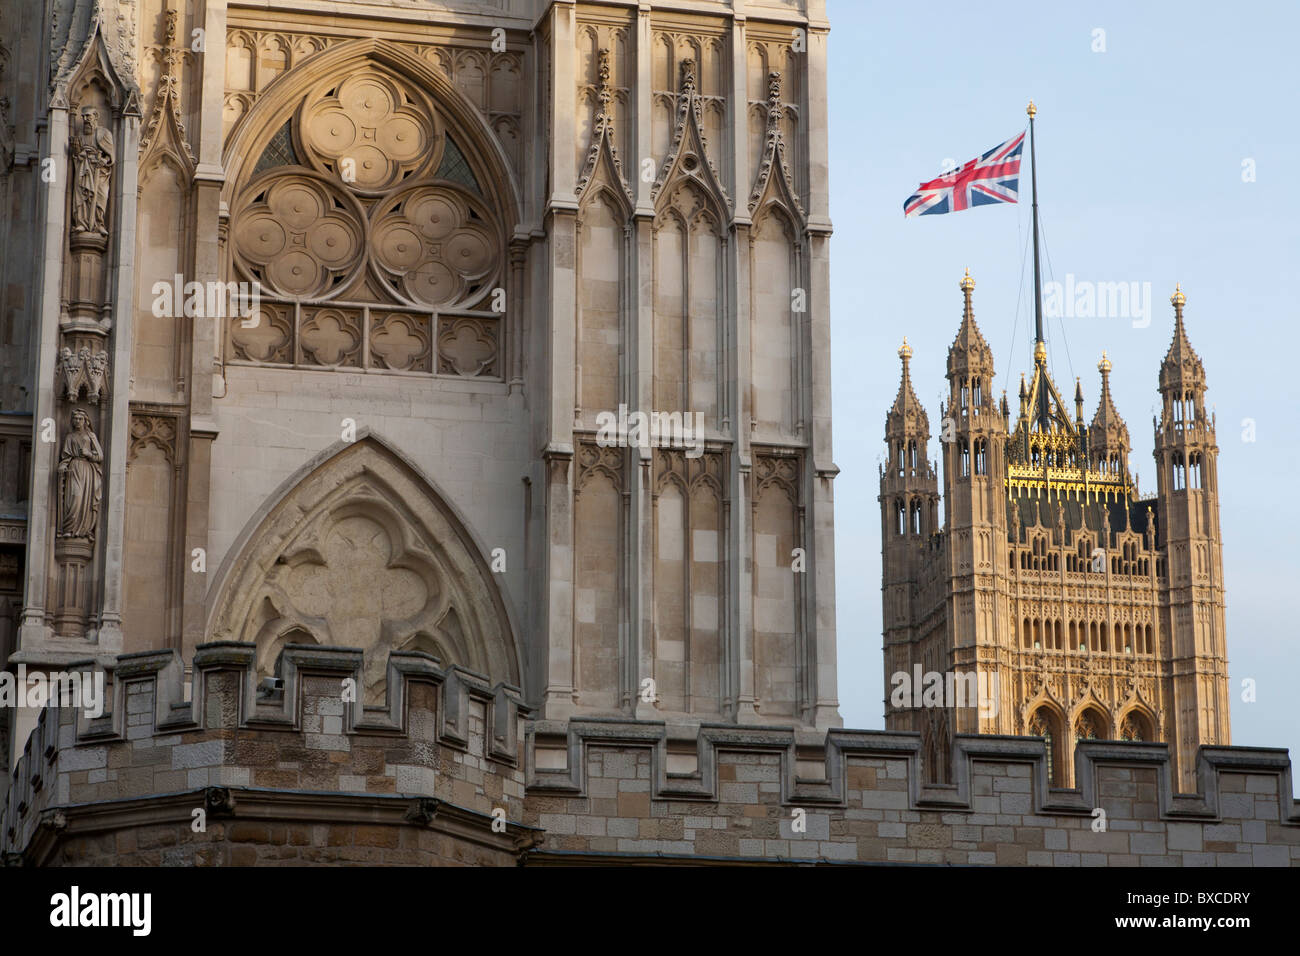 VIEW FROM WESTMINSTER ABBEY TO VICTORIA TOWER, PALACE OF WESTMINSTER, LONDON, ENGLAND, GREAT BRITAIN - Stock Image